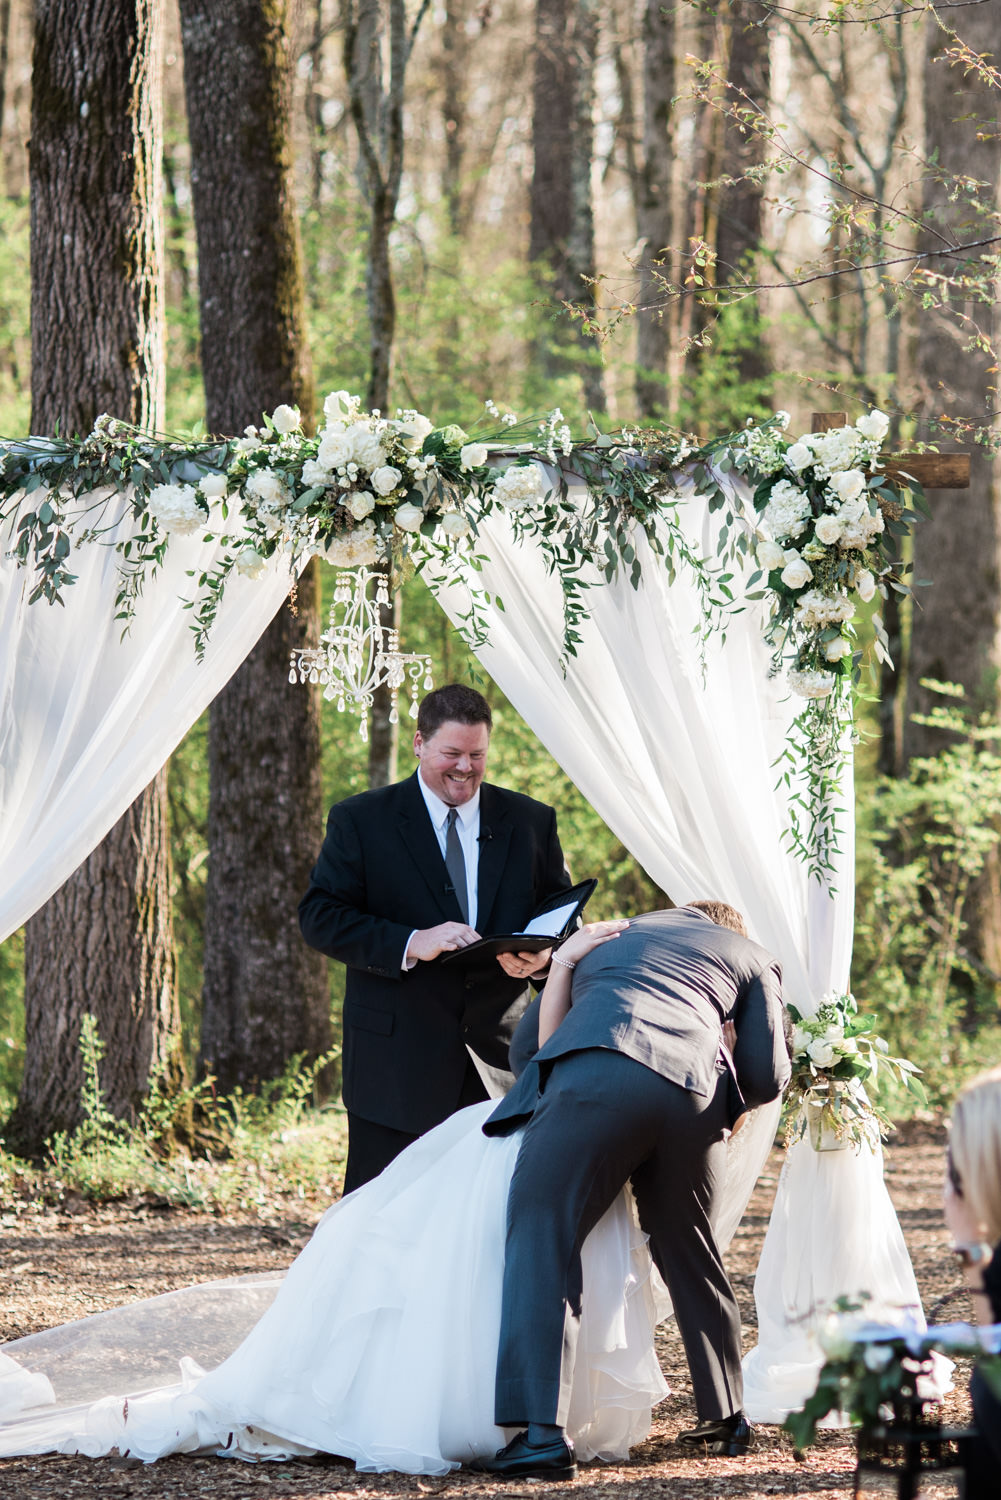 Athens-Georgia-Wedding-kiss-69.jpg